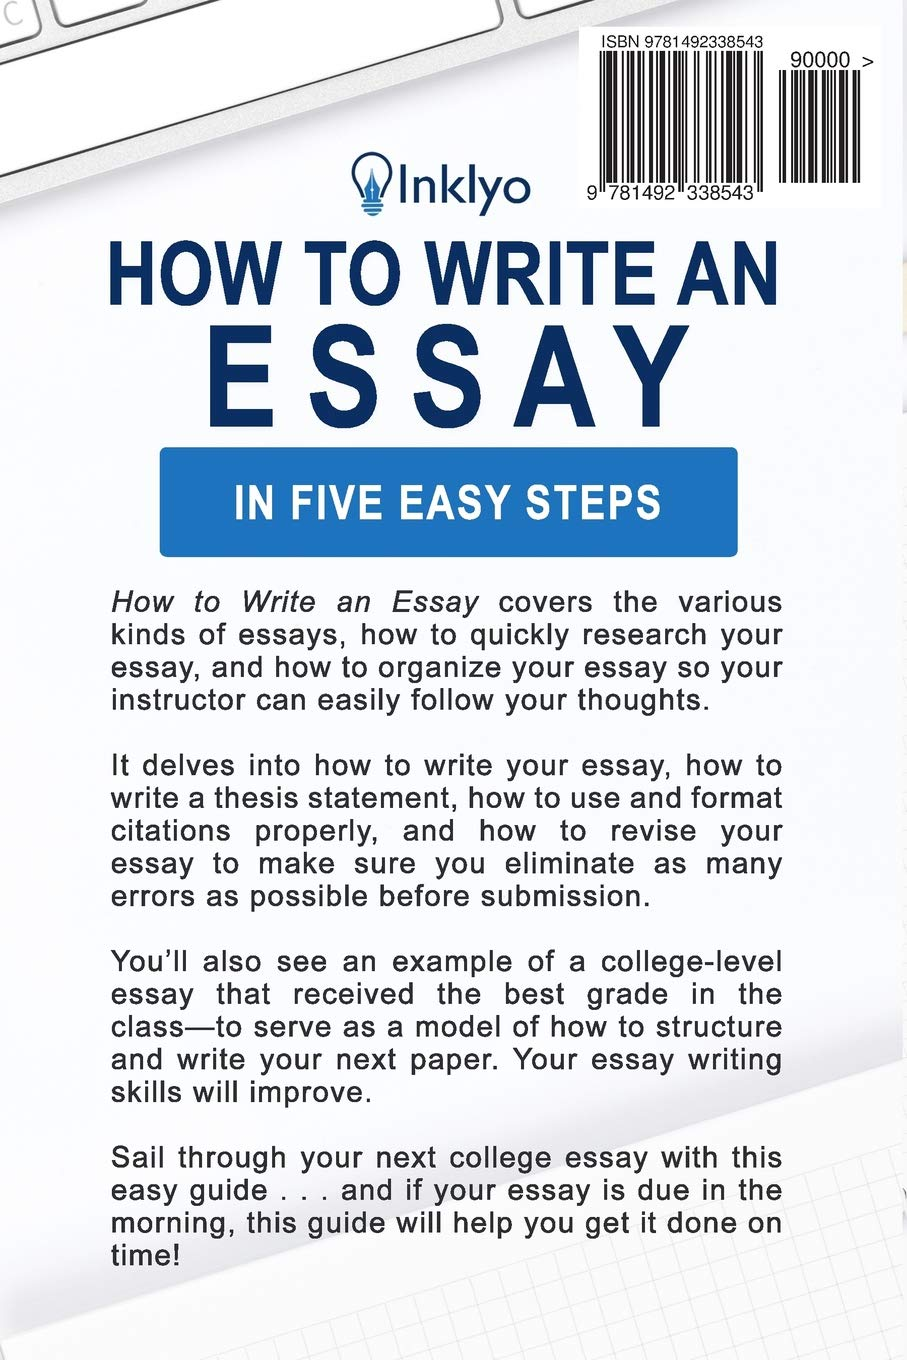 004 71v7ckw5pll Essay Example Steps To Writing Stunning An Middle School Argumentative Full